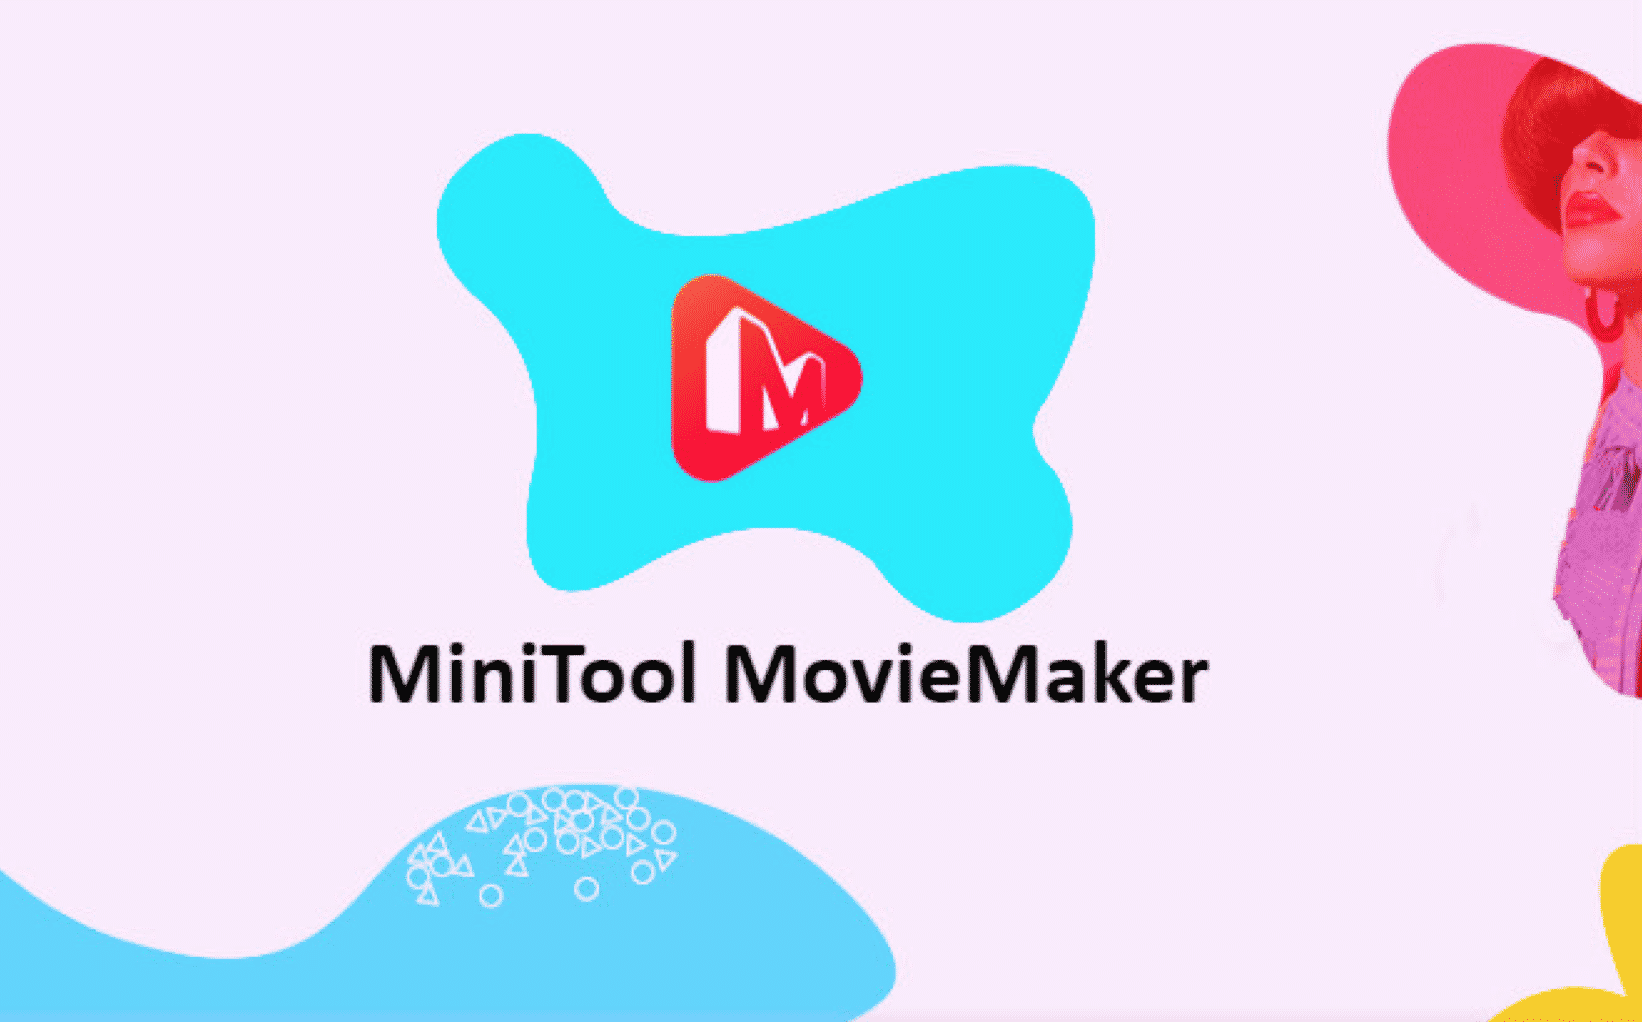 MiniTool MovieMaker Review